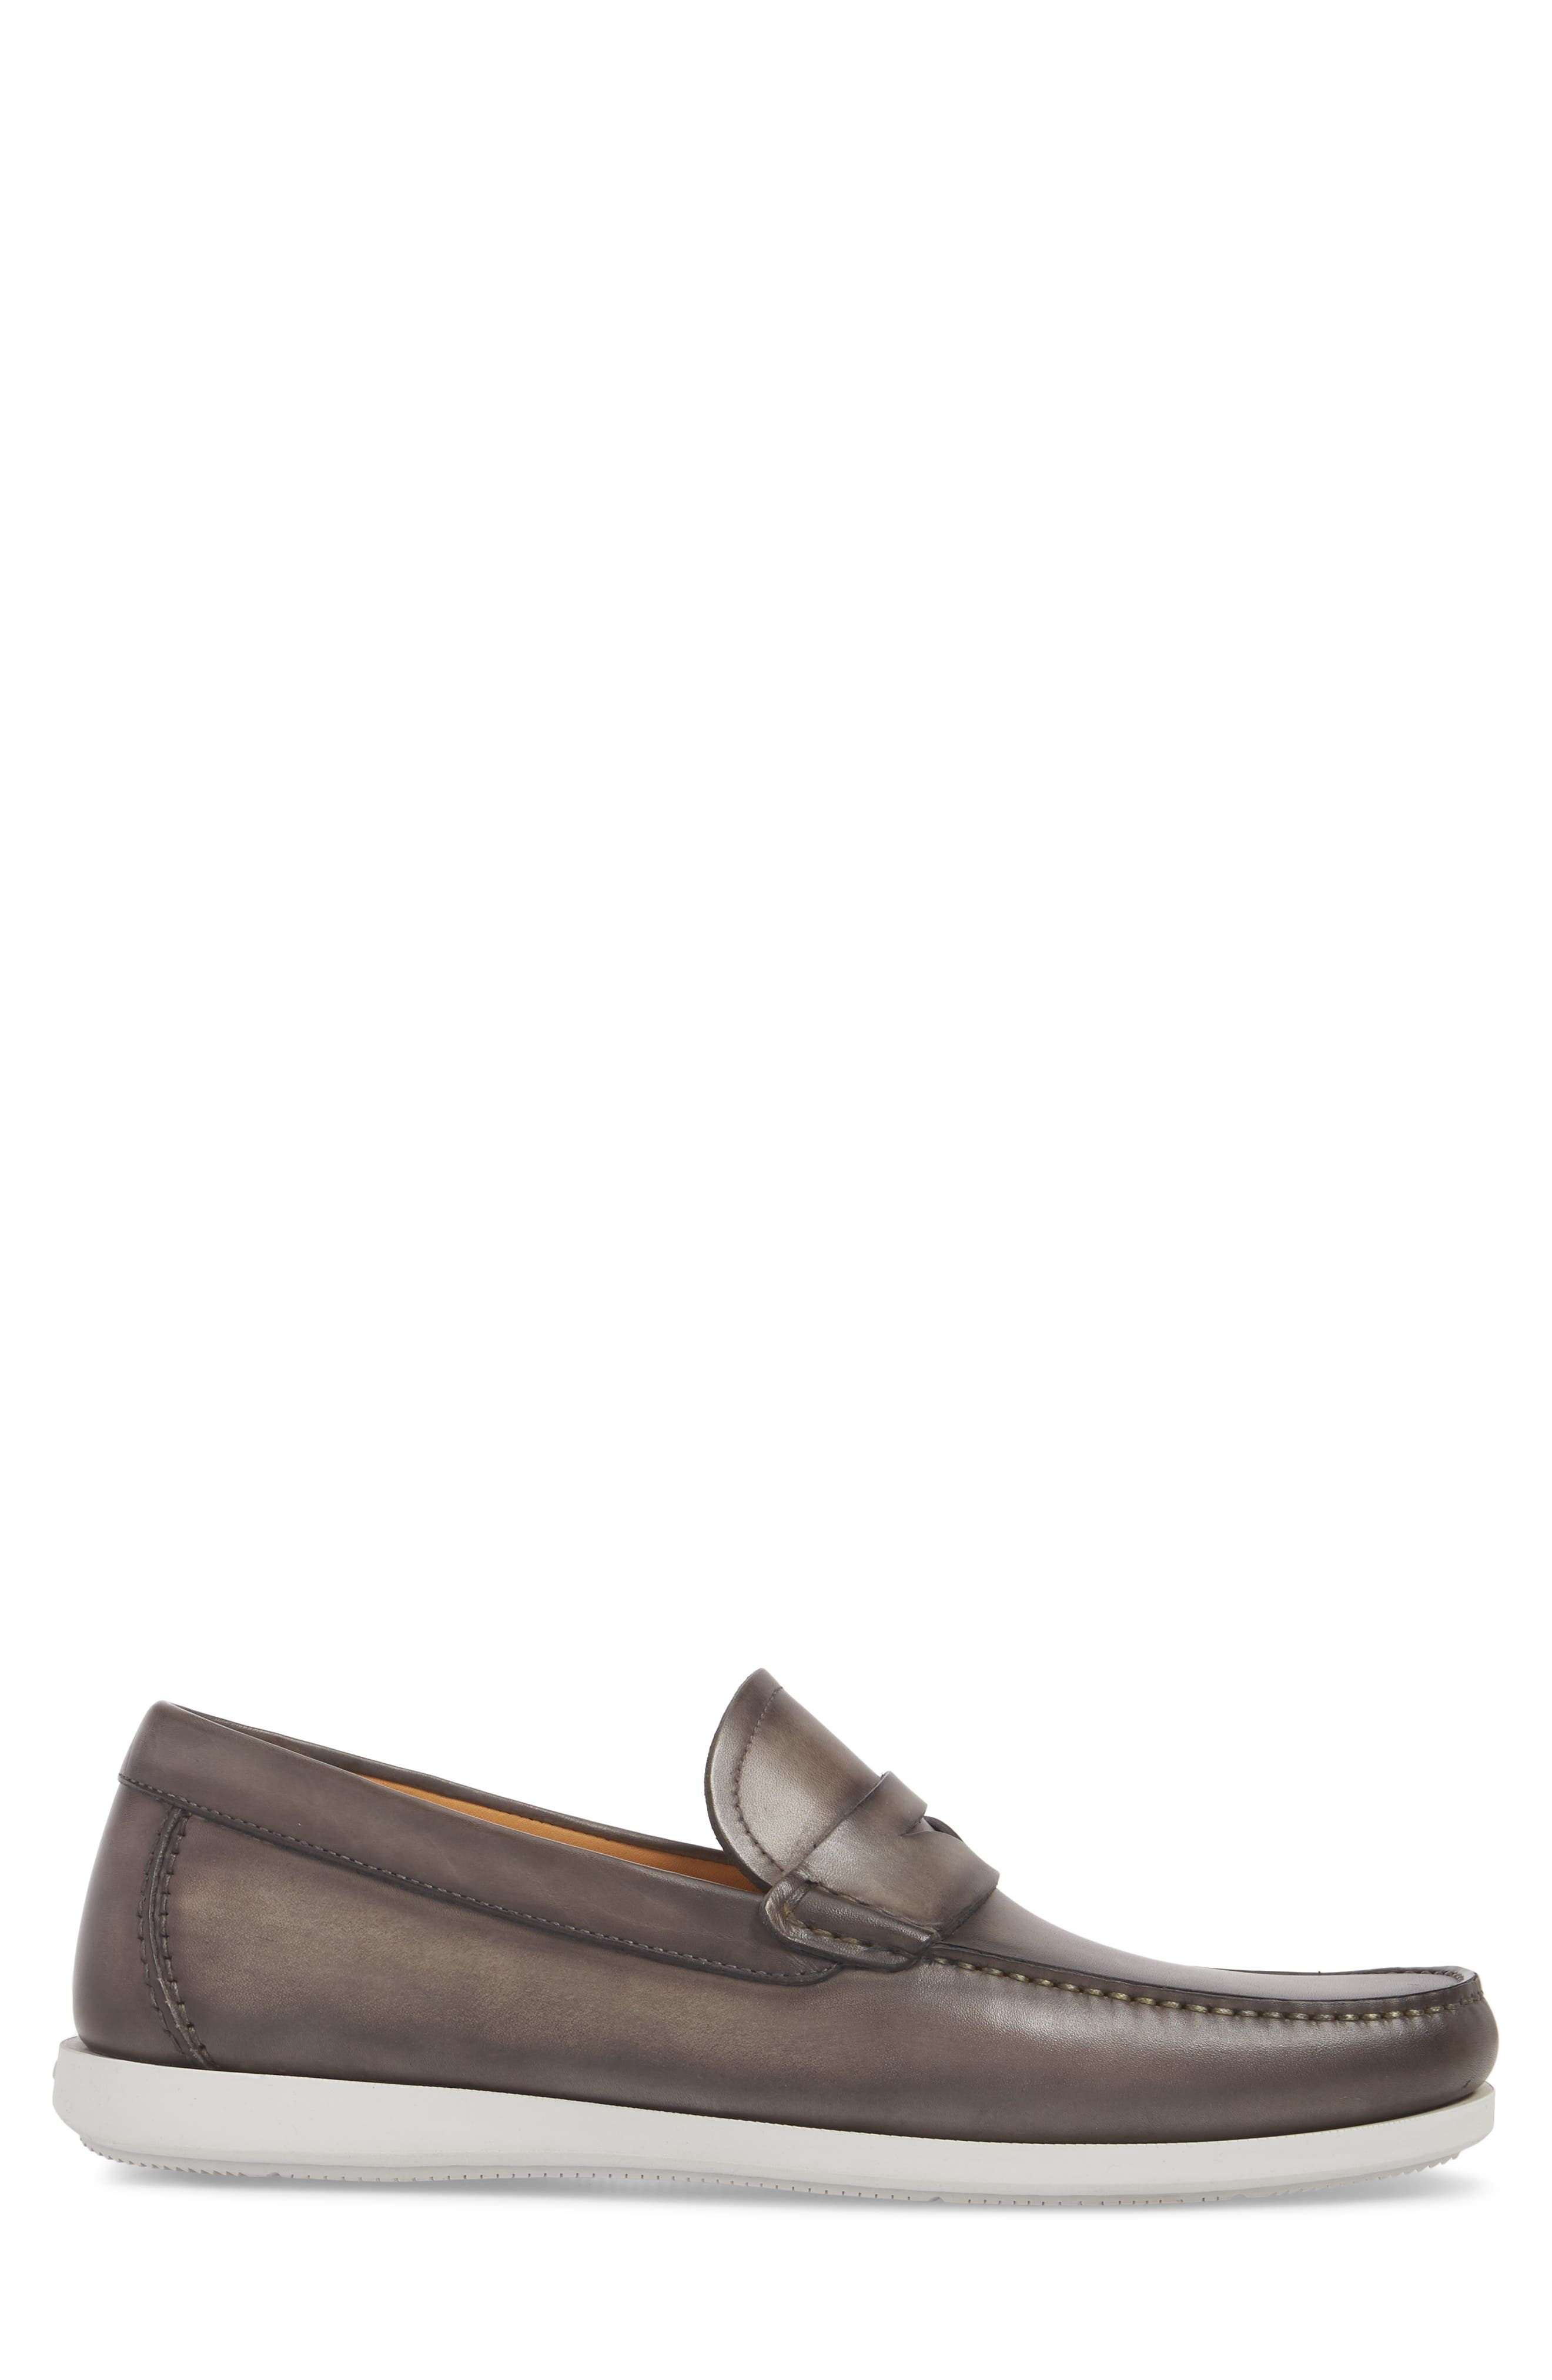 Laguna Penny Loafer,                             Alternate thumbnail 3, color,                             Grey Leather